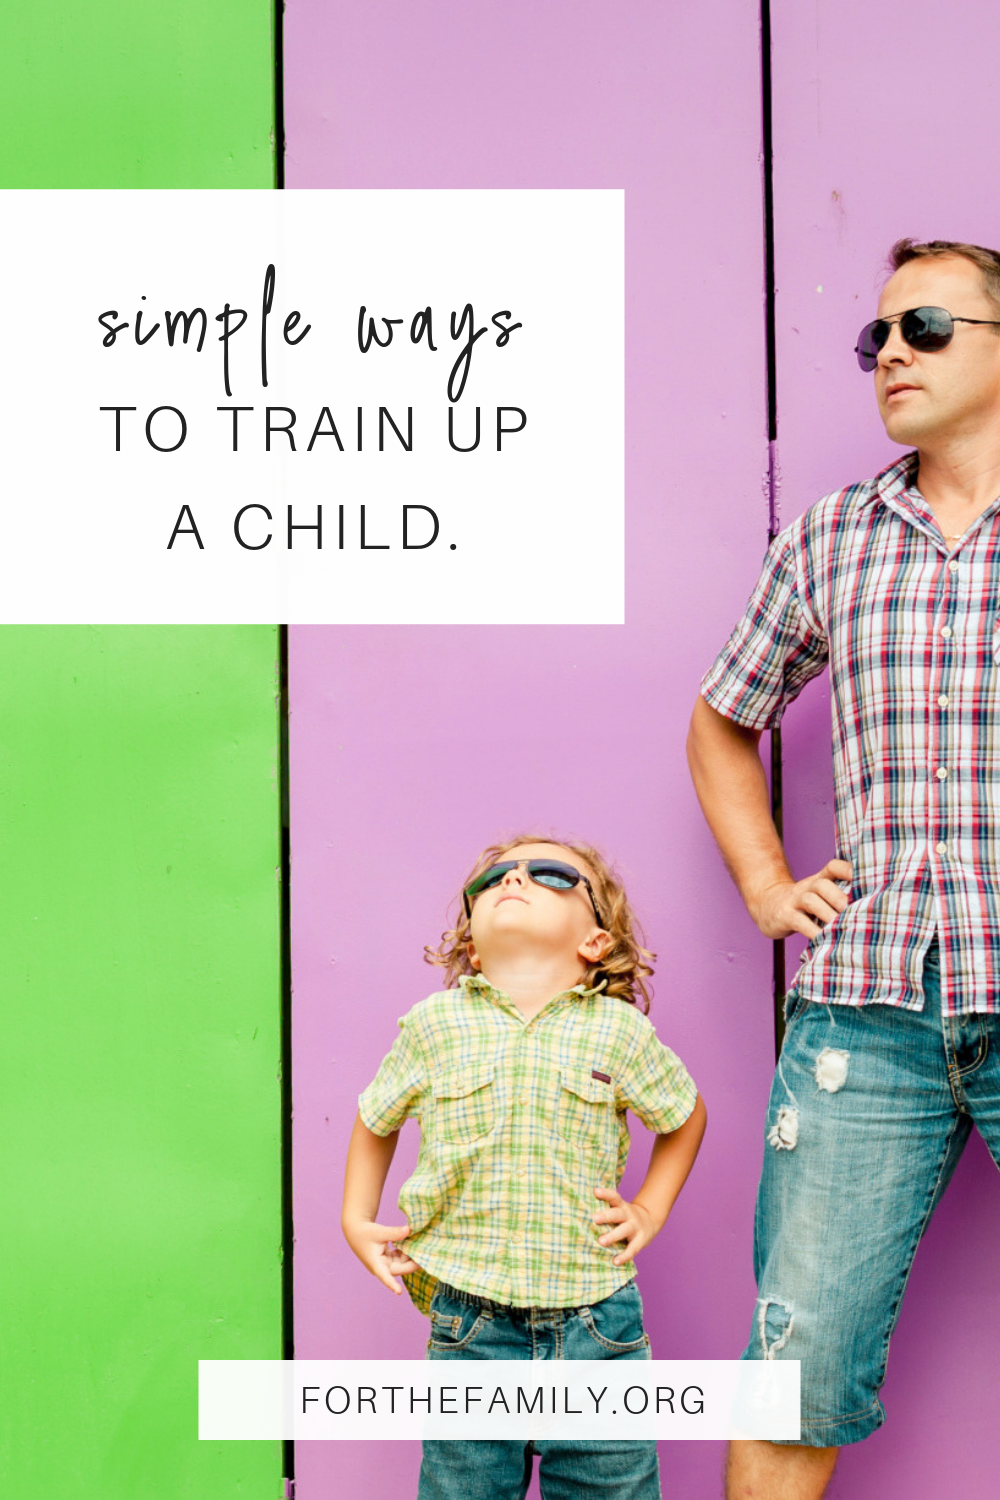 Do you feel equipped to train your children and help them reach their full, God-given potential? These six principles found in Scripture are a wonderful guide for connecting with your kids and helping them grow to be more like Jesus!